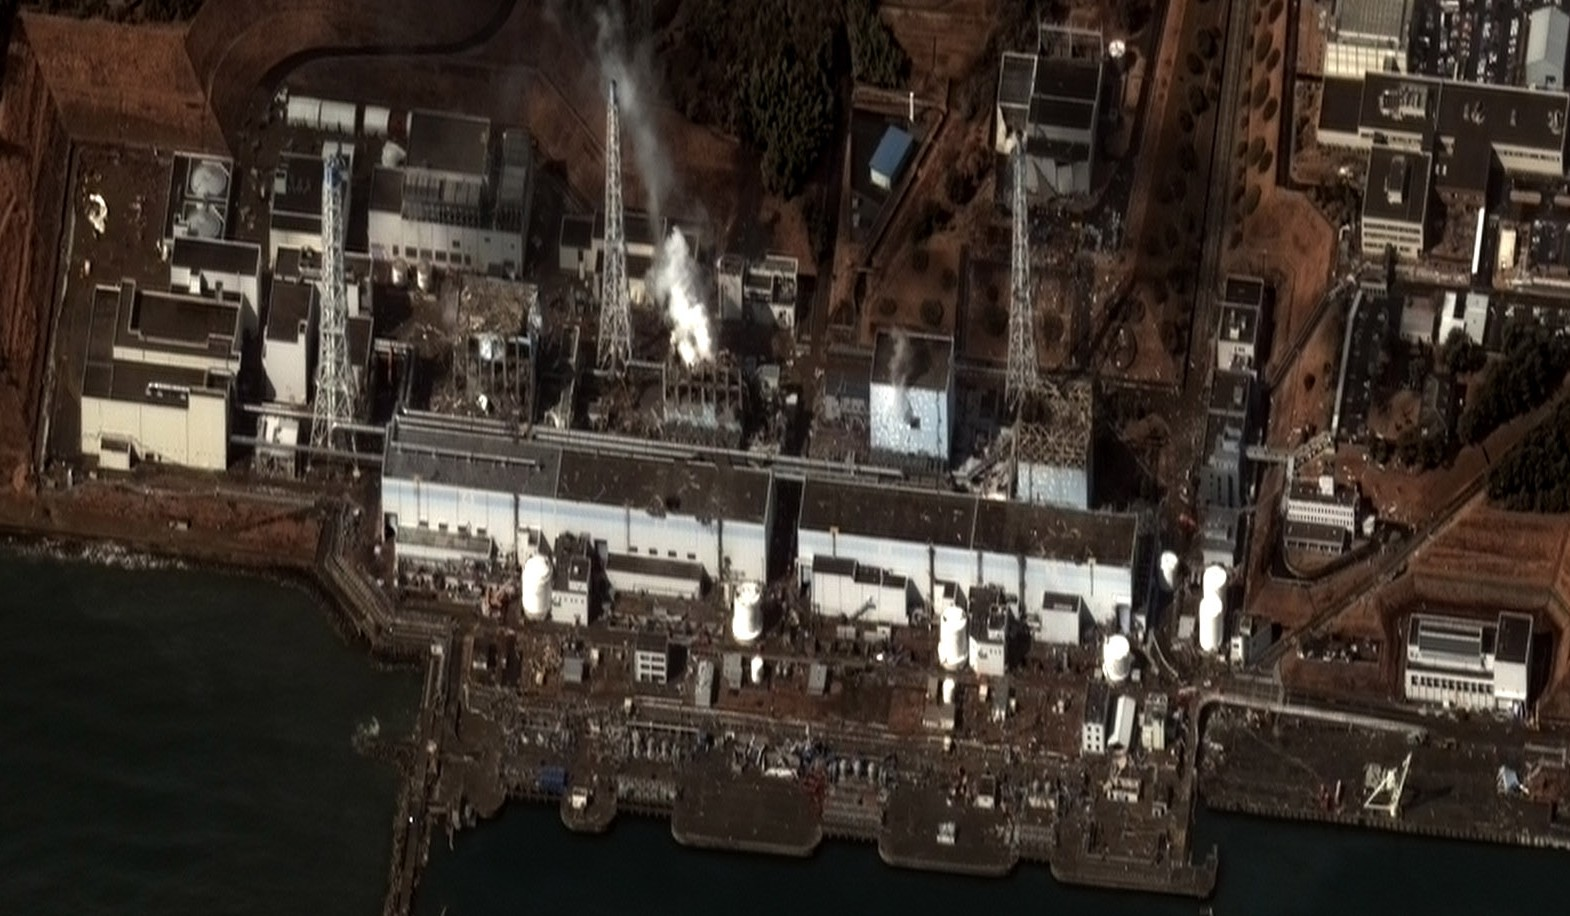 Imagen satelitaria de Fukushima I, tomada el 16/03/2011. Foto: Digitalglobe Imagery. (Clic para ampliar)